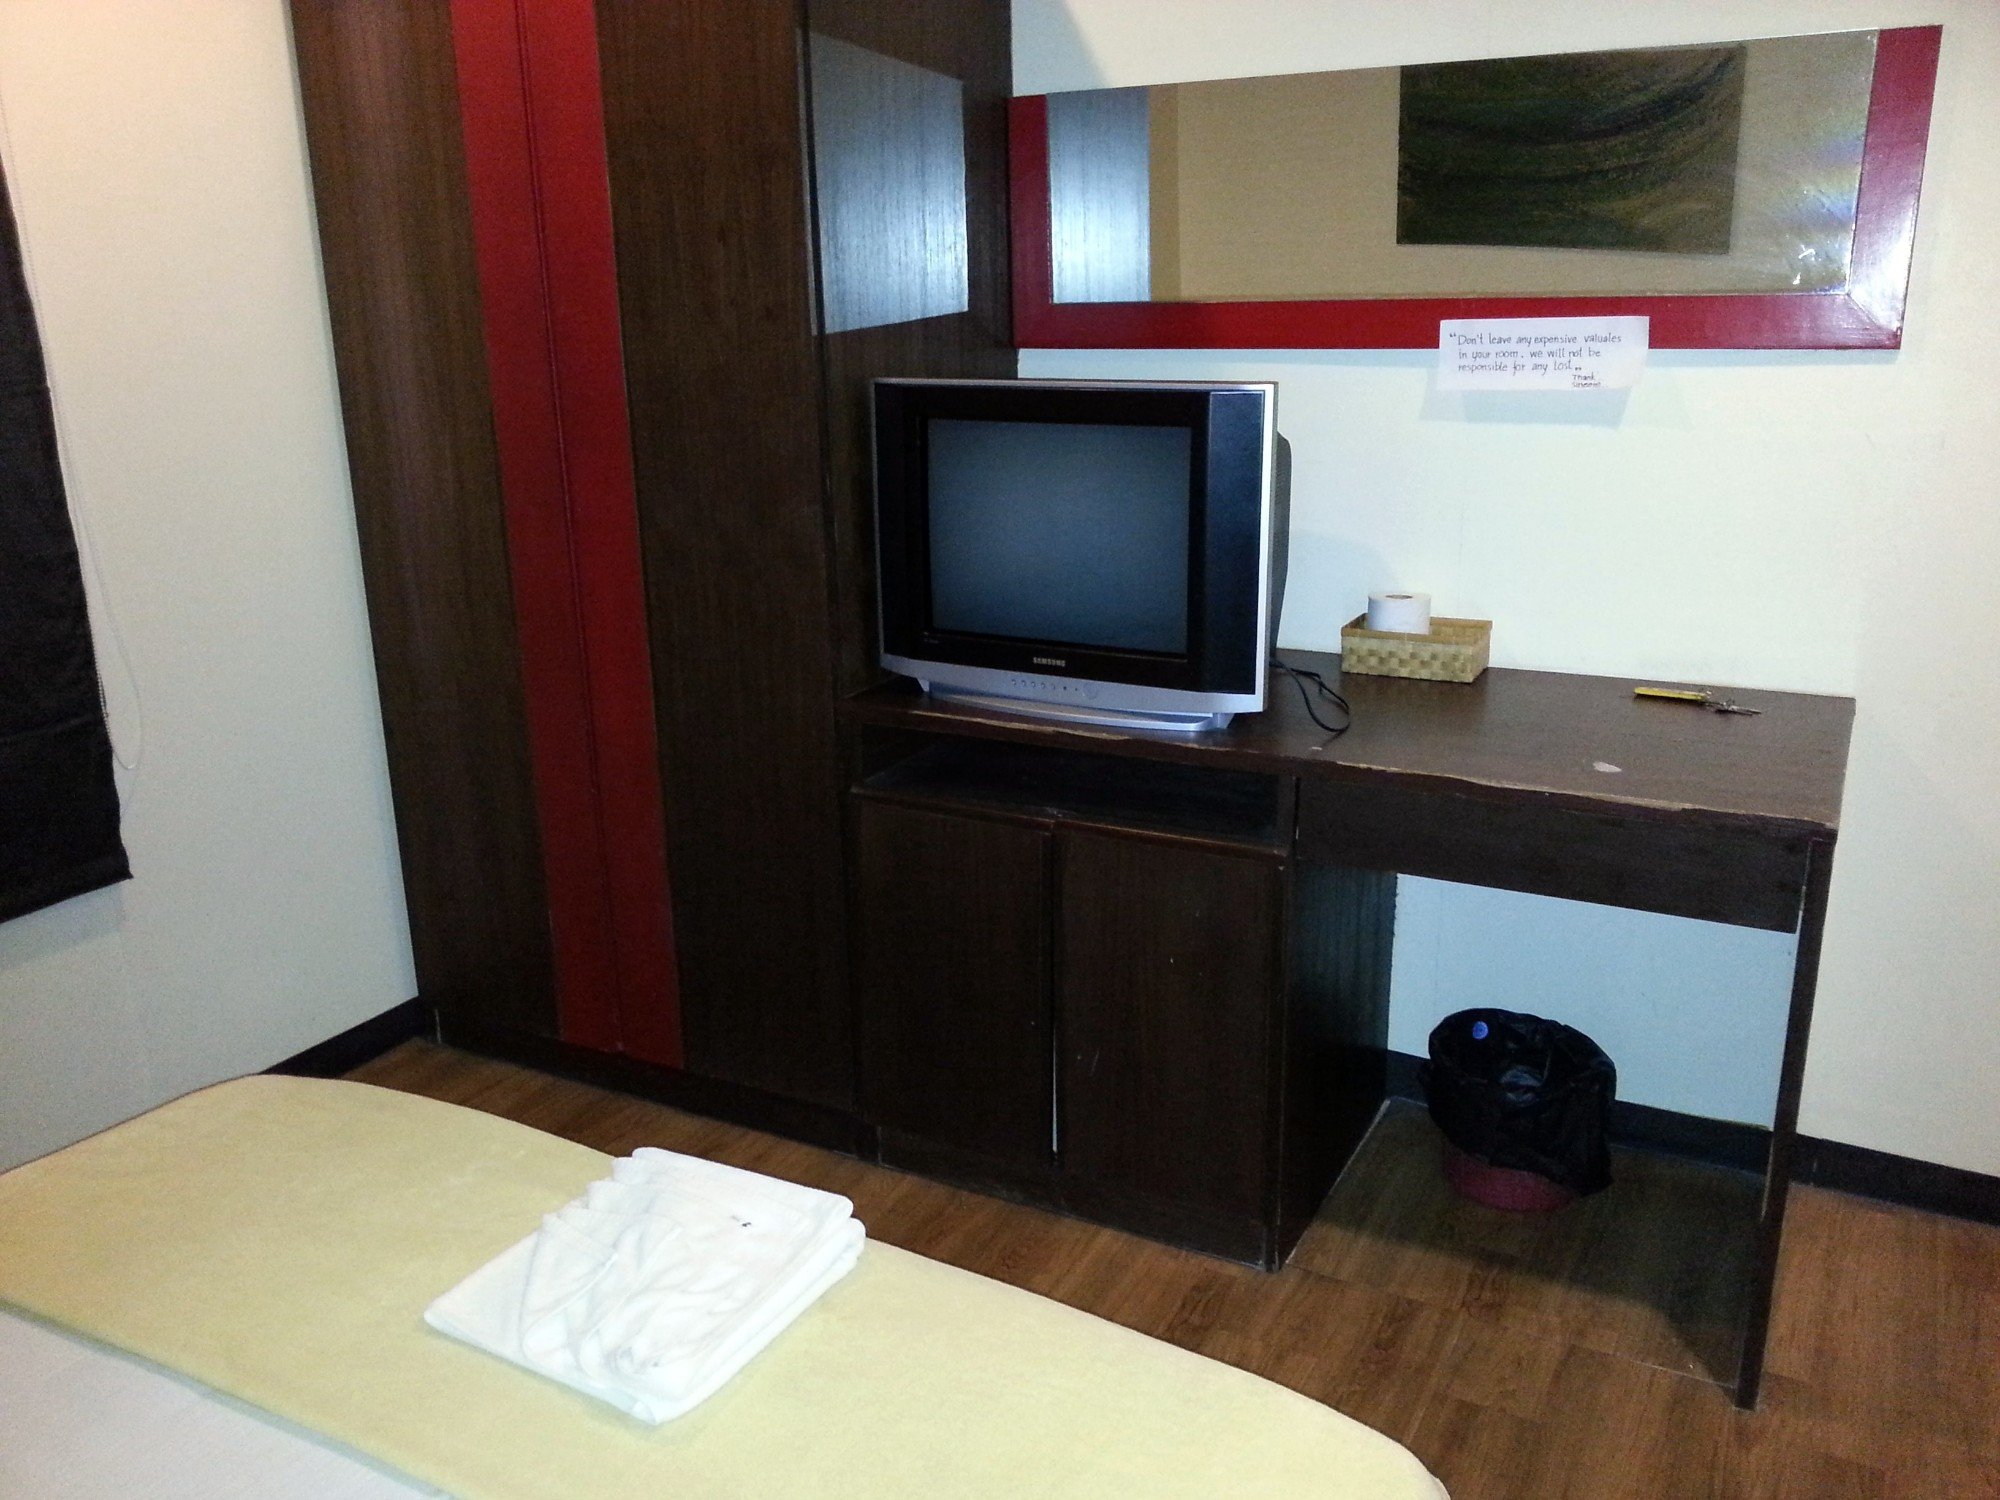 Room facilities at the Sincere Guesthouse